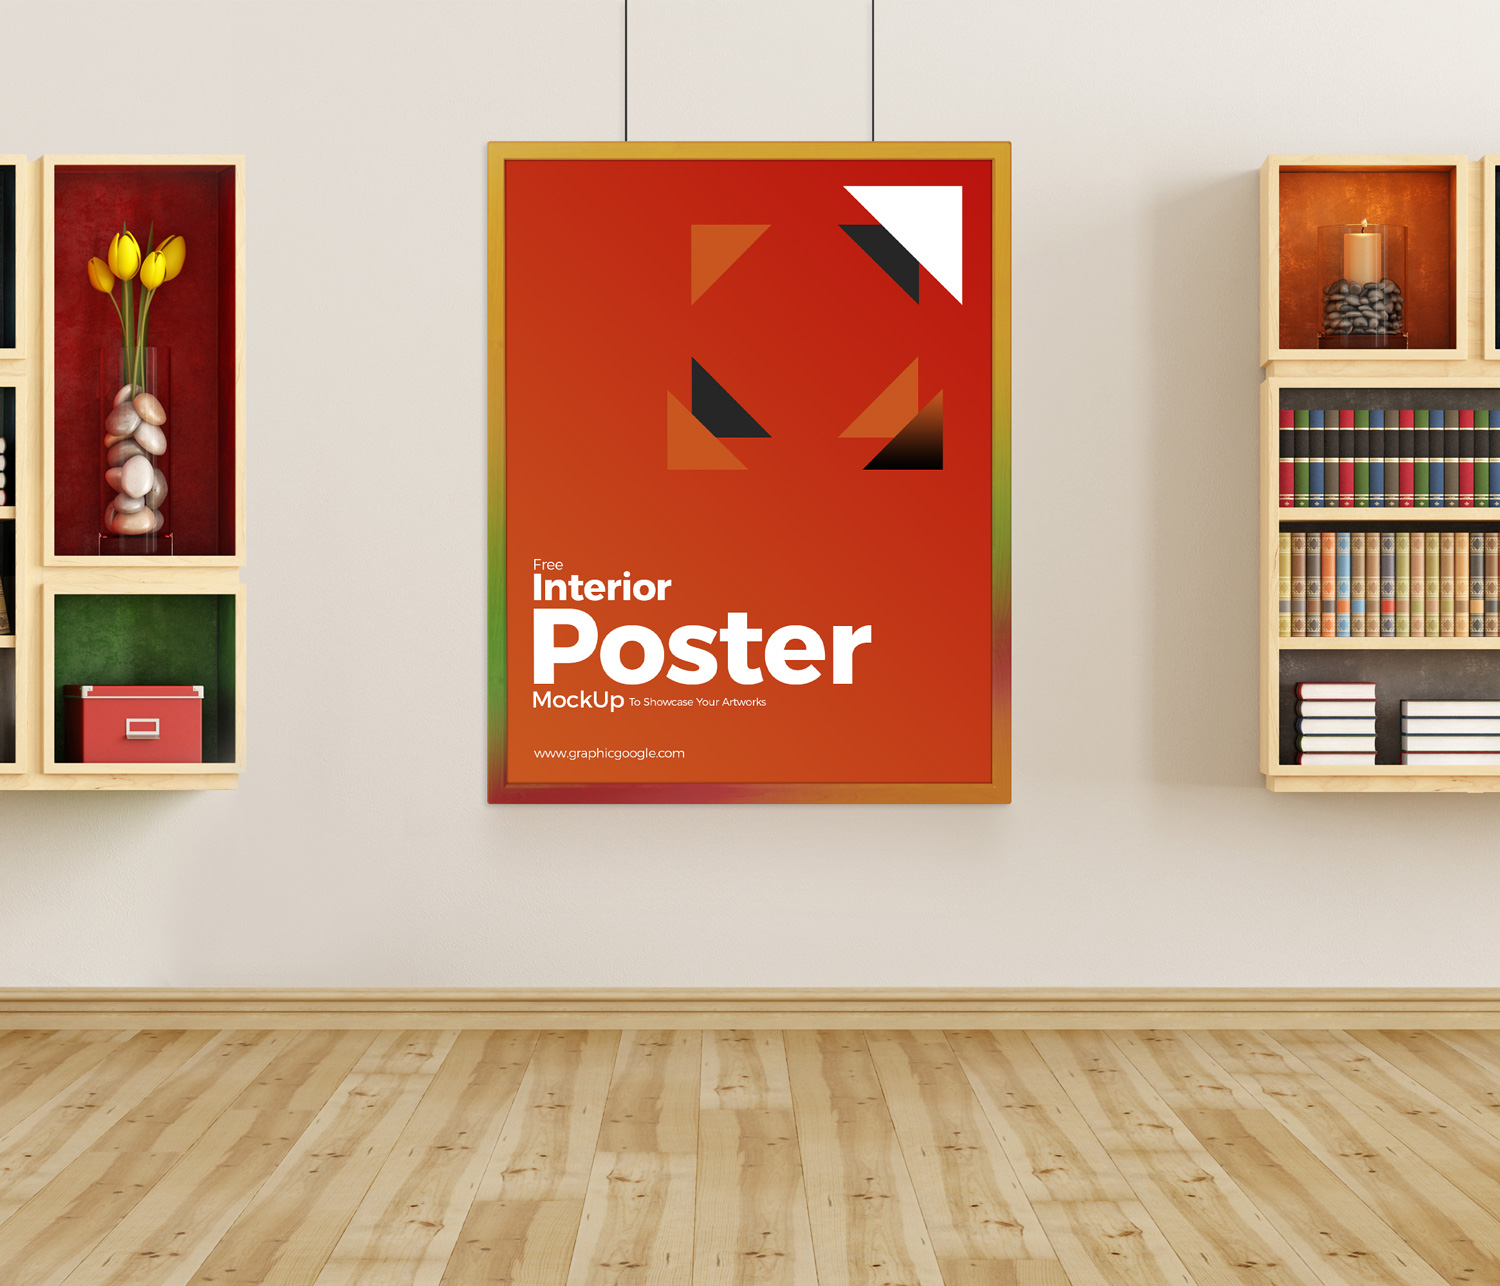 Free-Interior-Poster-Mockup-To-Showcase-Your-Artworks